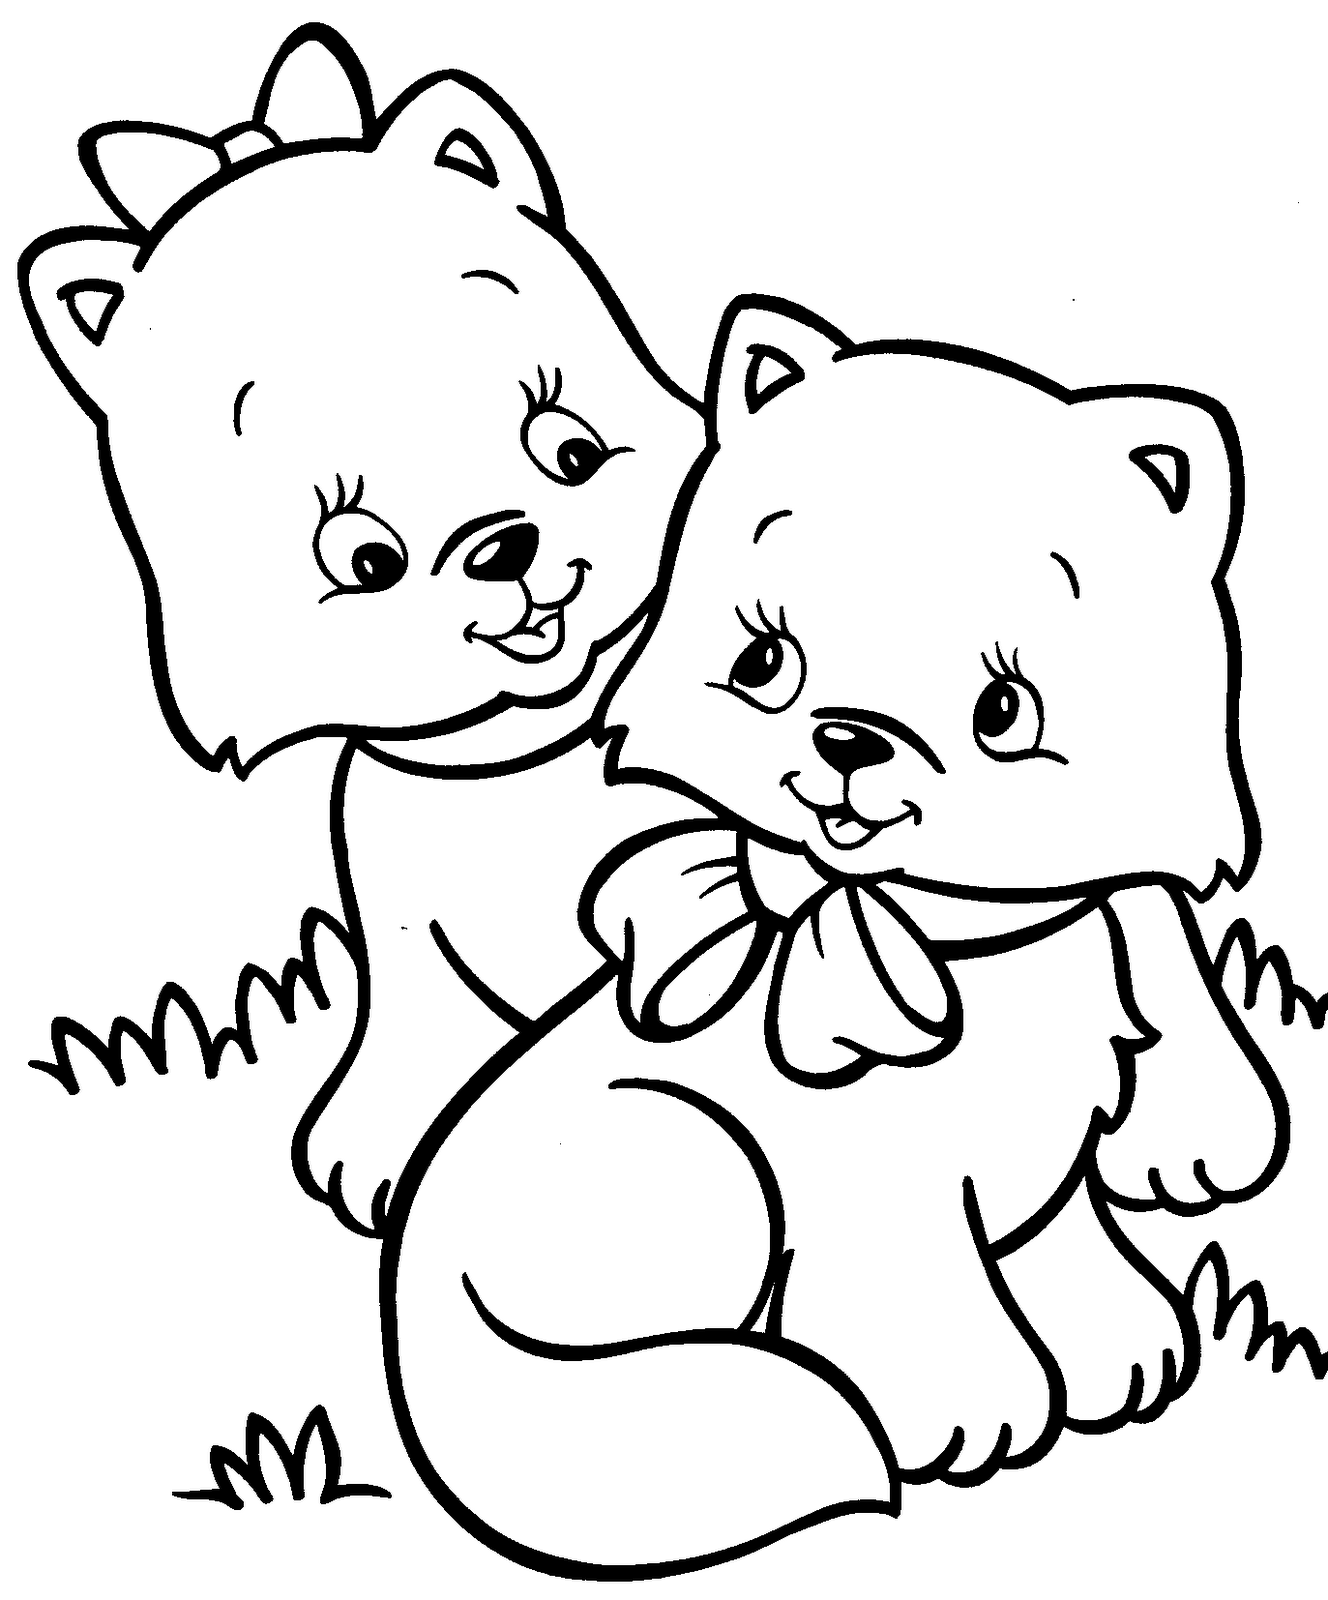 cat colouring pages cat free to color for kids wise cat full of details cat colouring pages